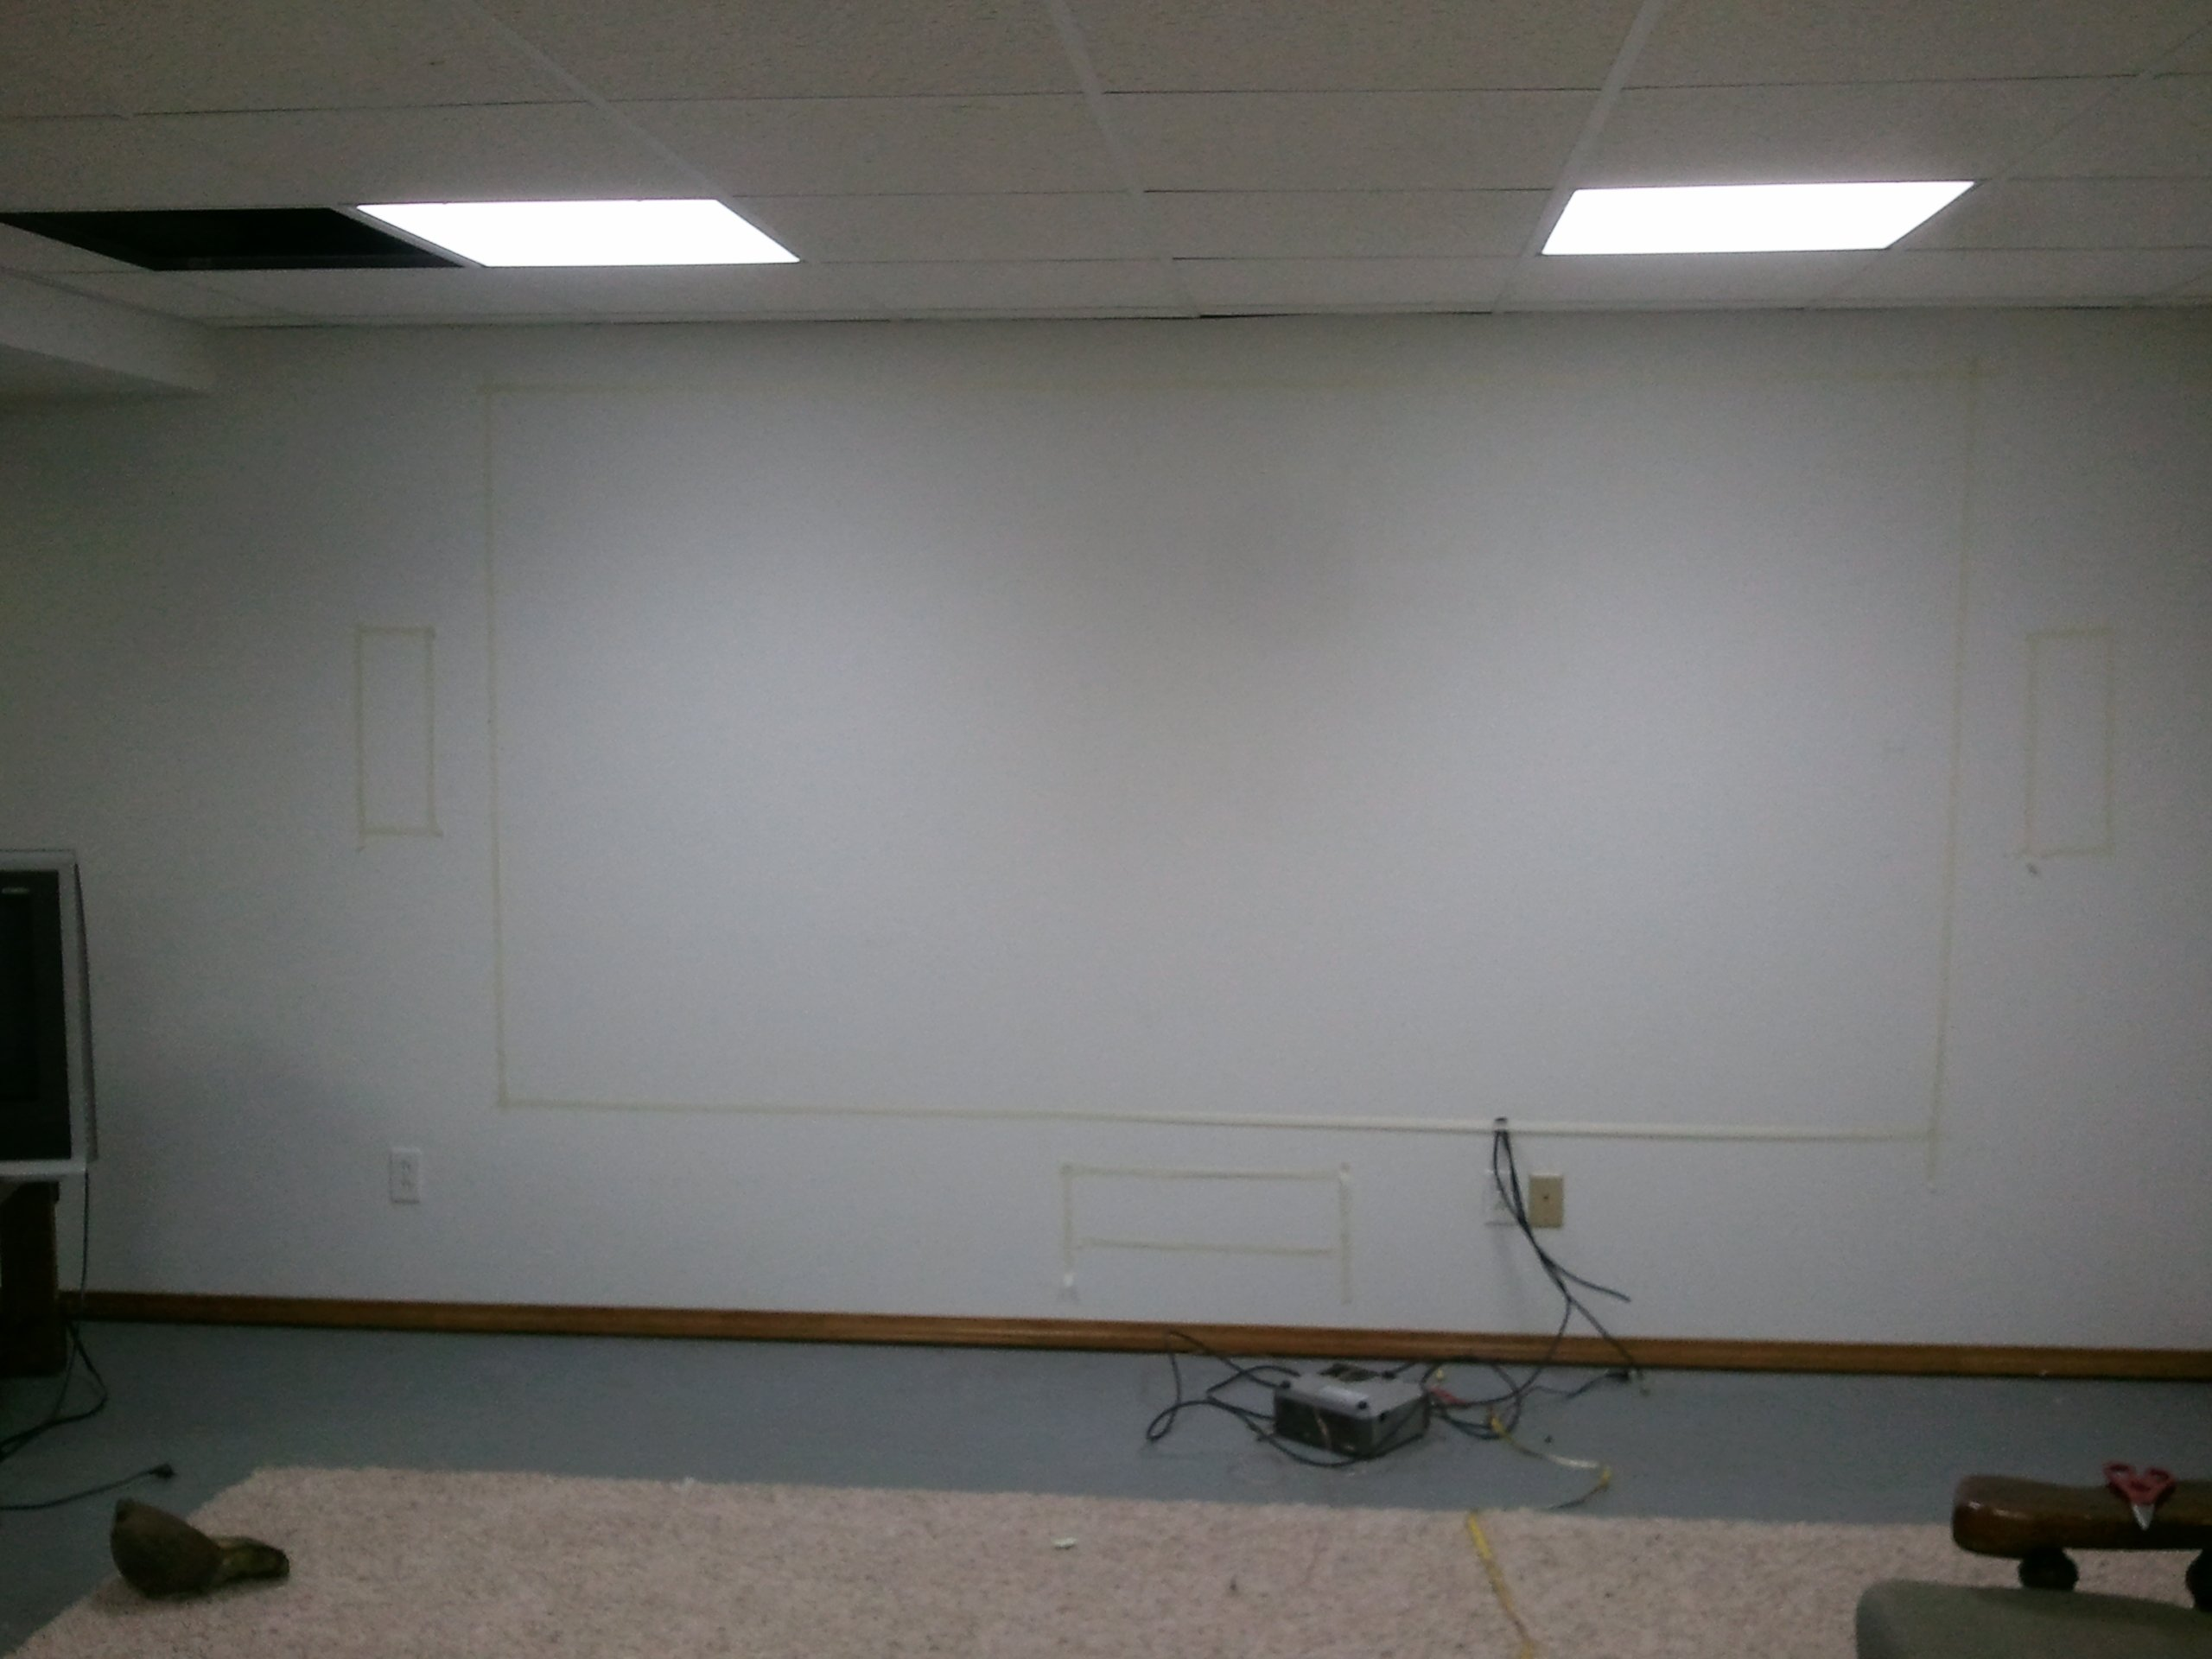 James Diy Basement Theater Avs Forum Home Discussions Wiring I Also Ran All The Back To Closet That Can Been Seen In Picture Below